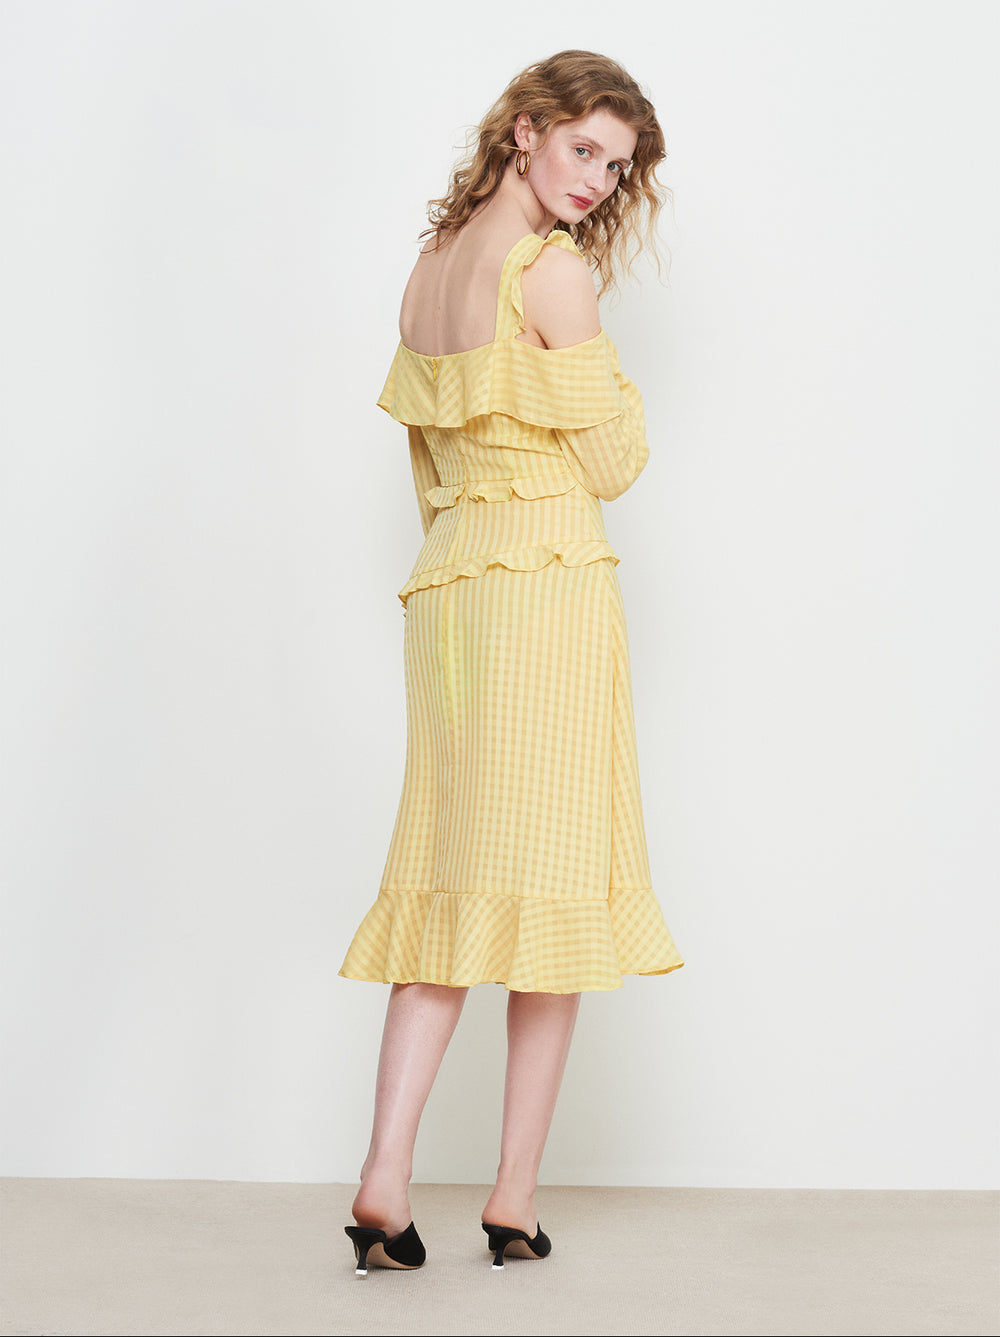 Layla Yellow Frill Sun Dress by KITRI Studio